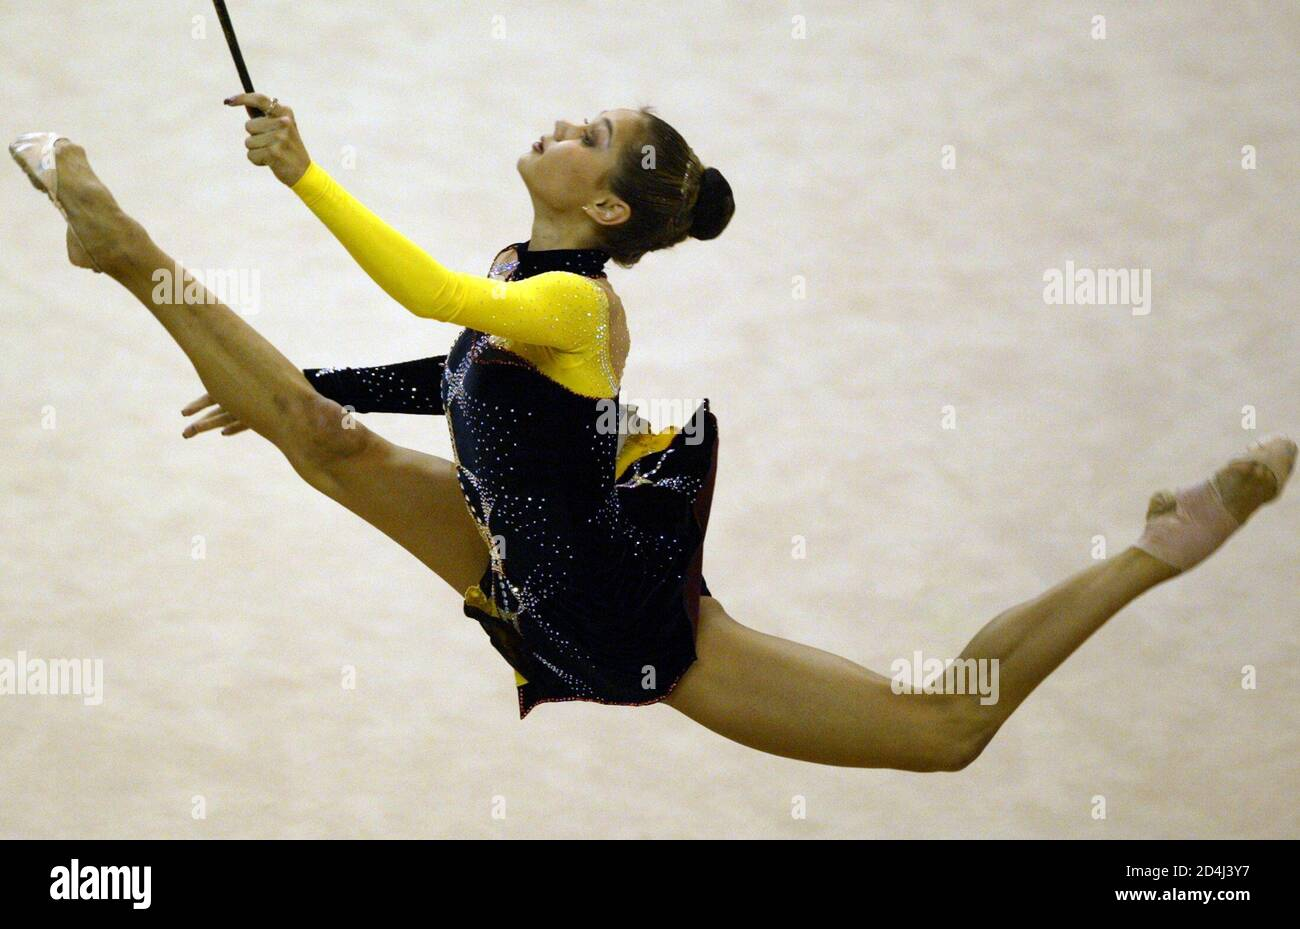 IRINA CHASHCHINA PERFORMS DURING THE FINAL OF RHYTHMIC GYMNASTICS AT THE UNIVERSIADE GAMES IN KYEONGJU. Stock Photo